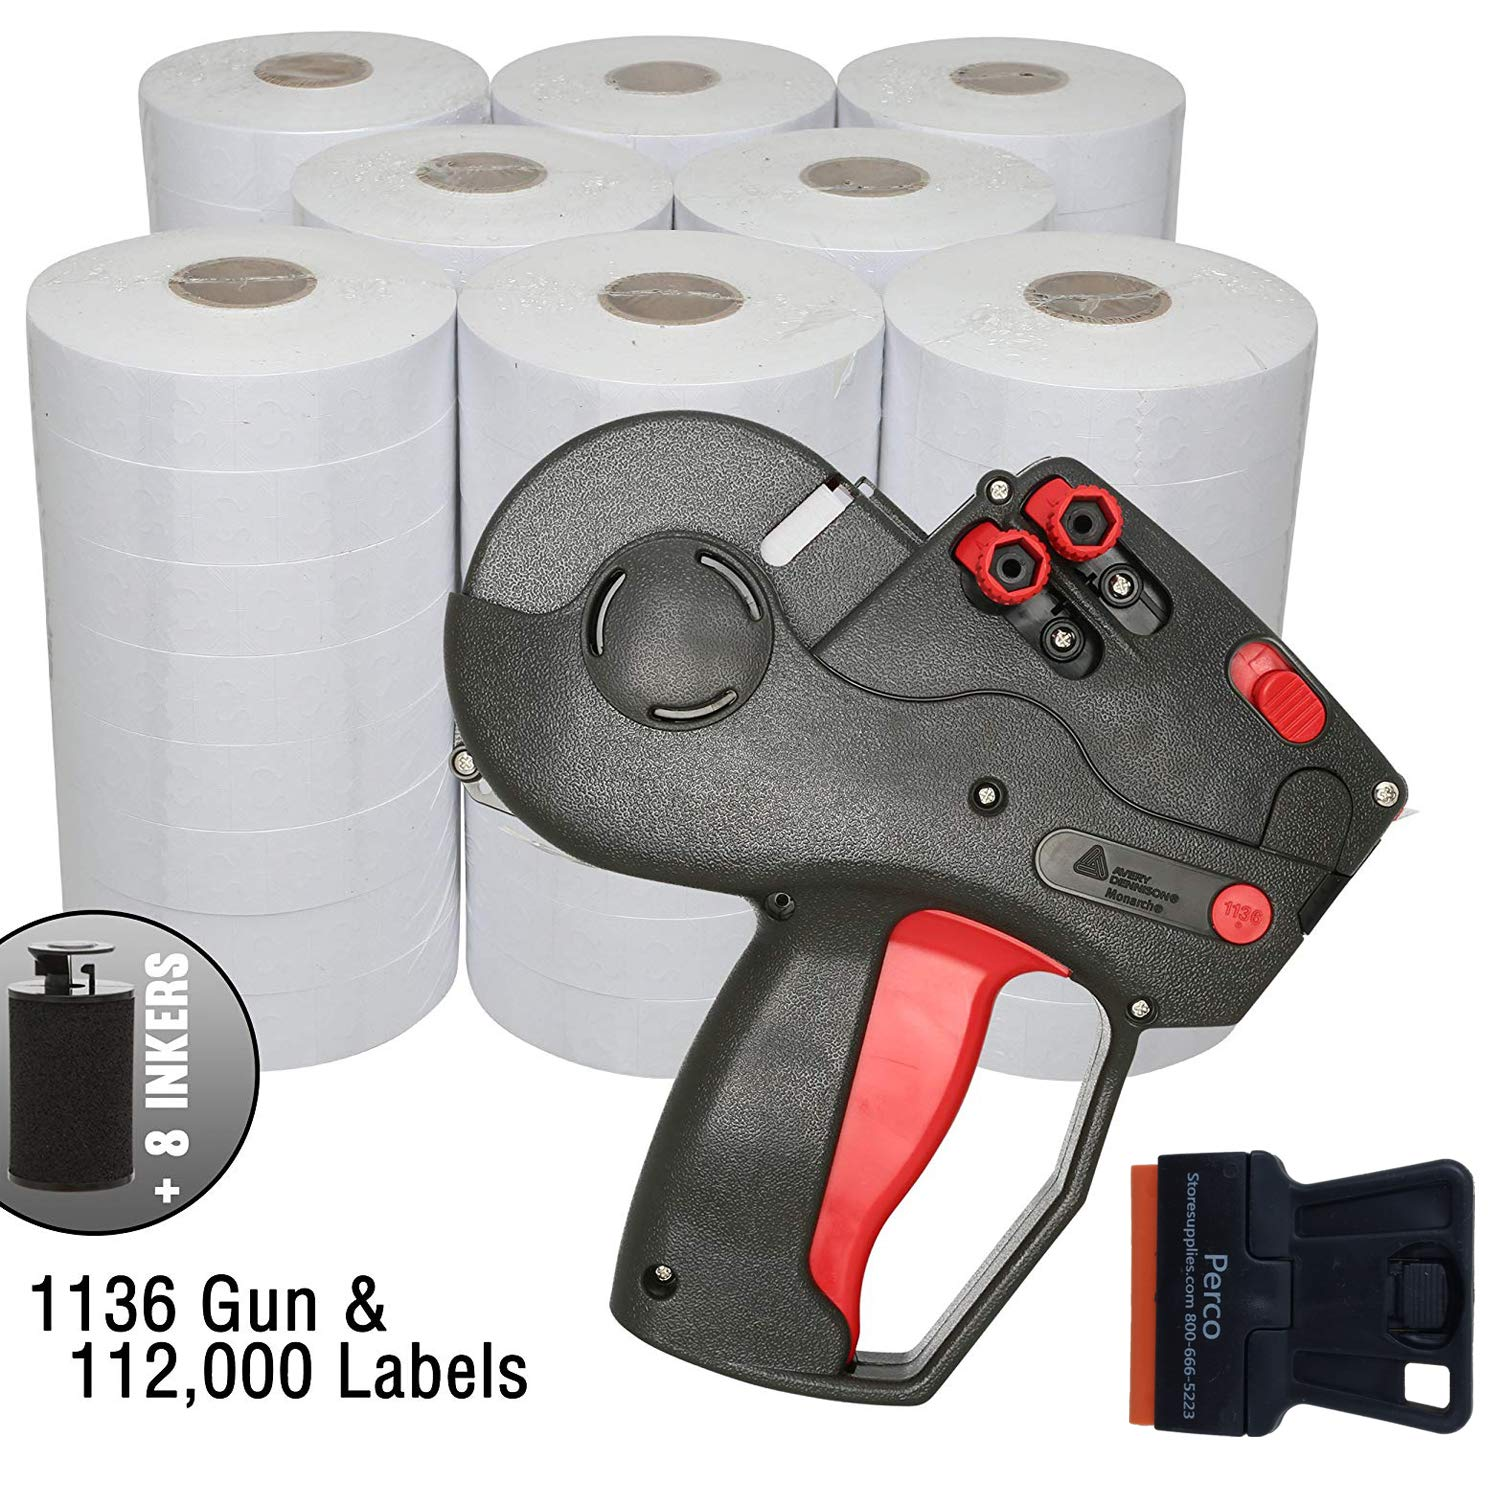 Monarch 1136 Price Gun with Labels Value Pack: Includes Monarch 1136 Pricing Gun, 112,000 White Pricemarking Labels, Bonus Inkers by Perco (Image #1)